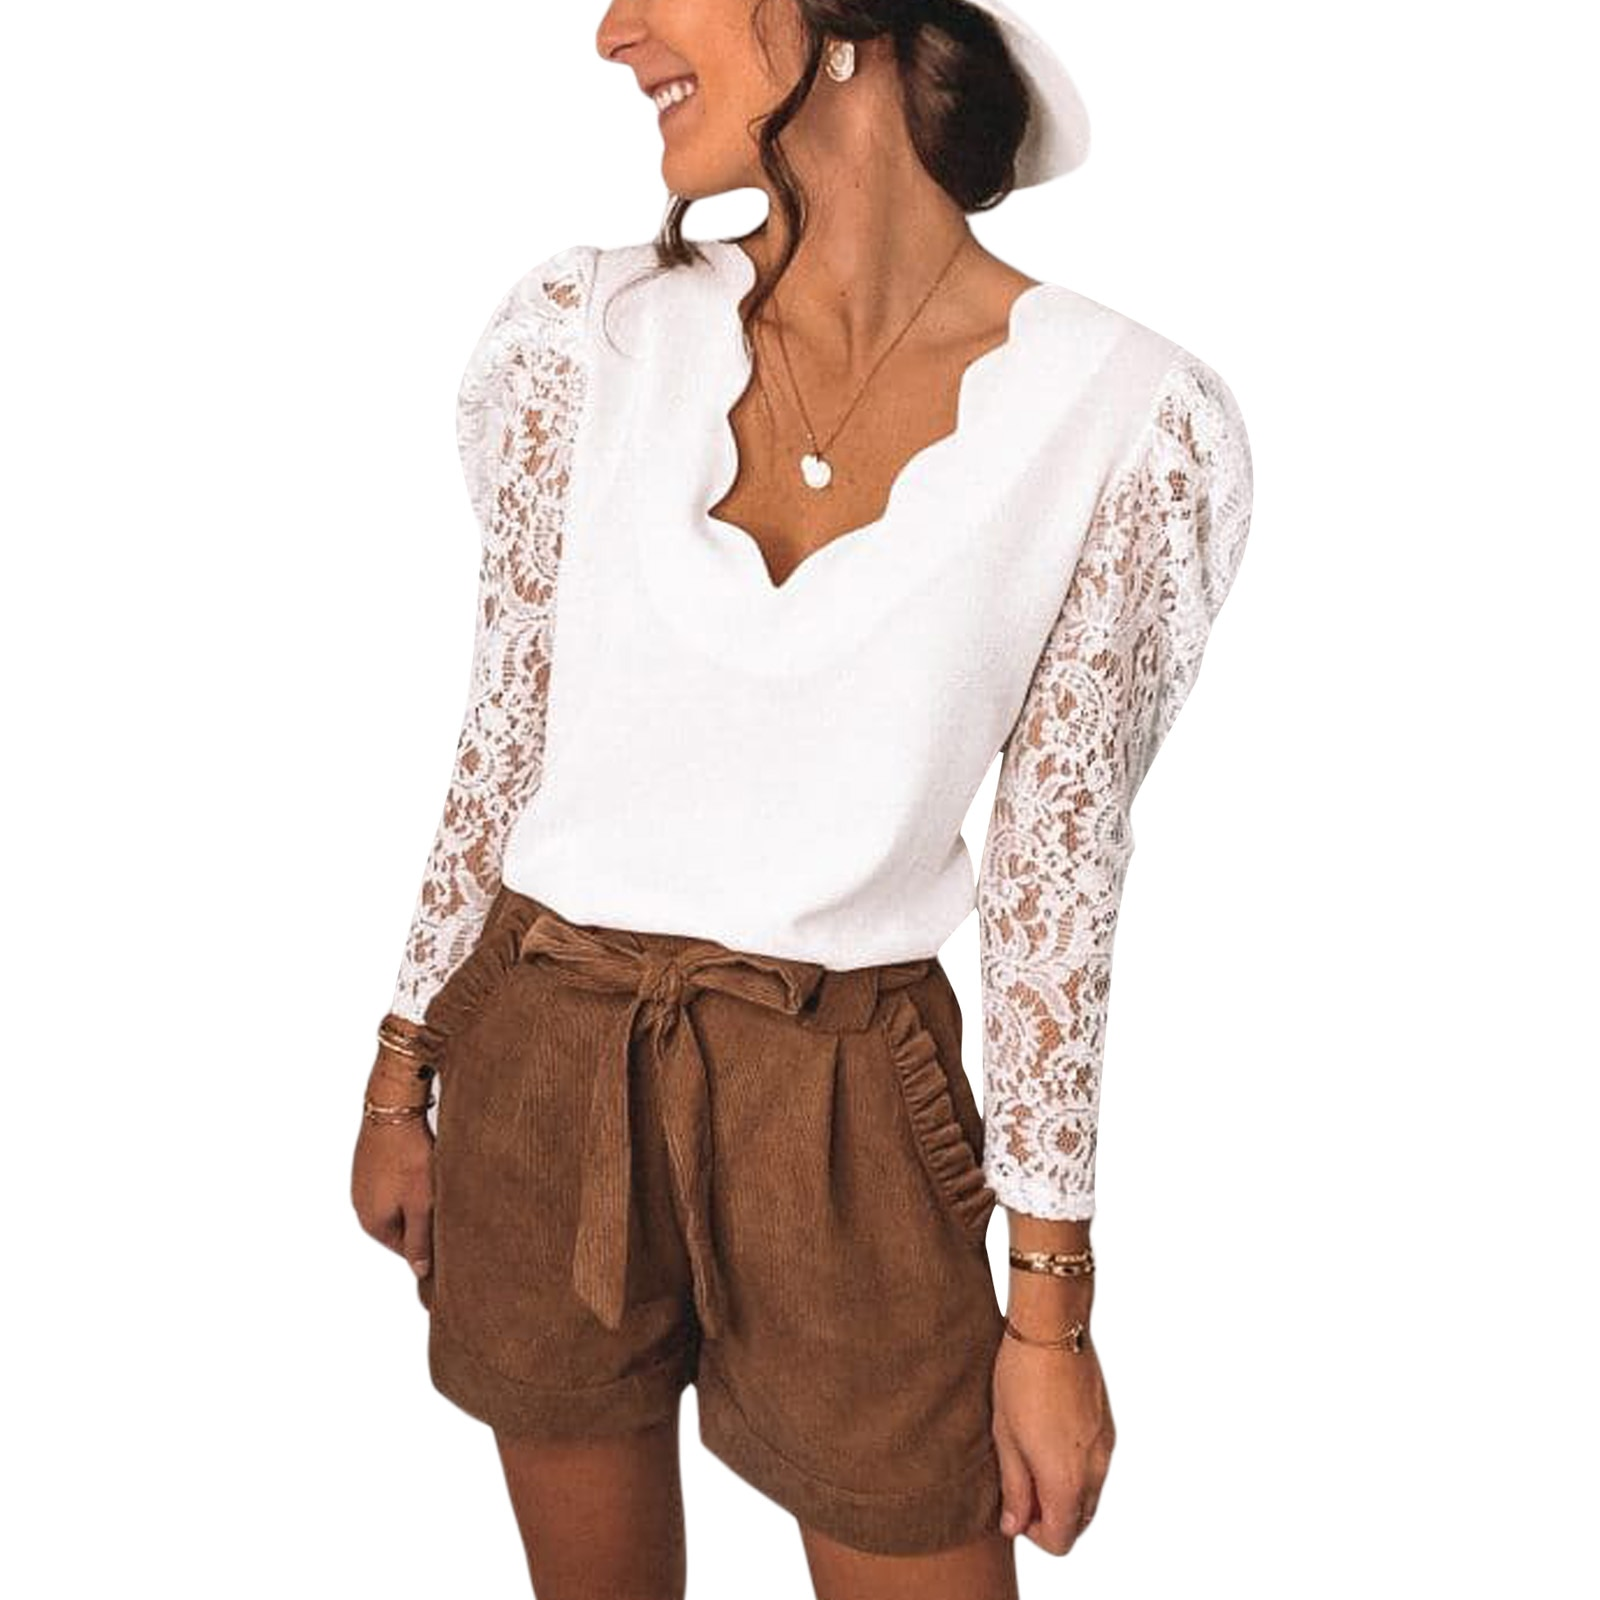 Women's T-shirt, Long Sleeve V-neck Lace Stitching Tops for Party Vacation Travelling Dating Holiday